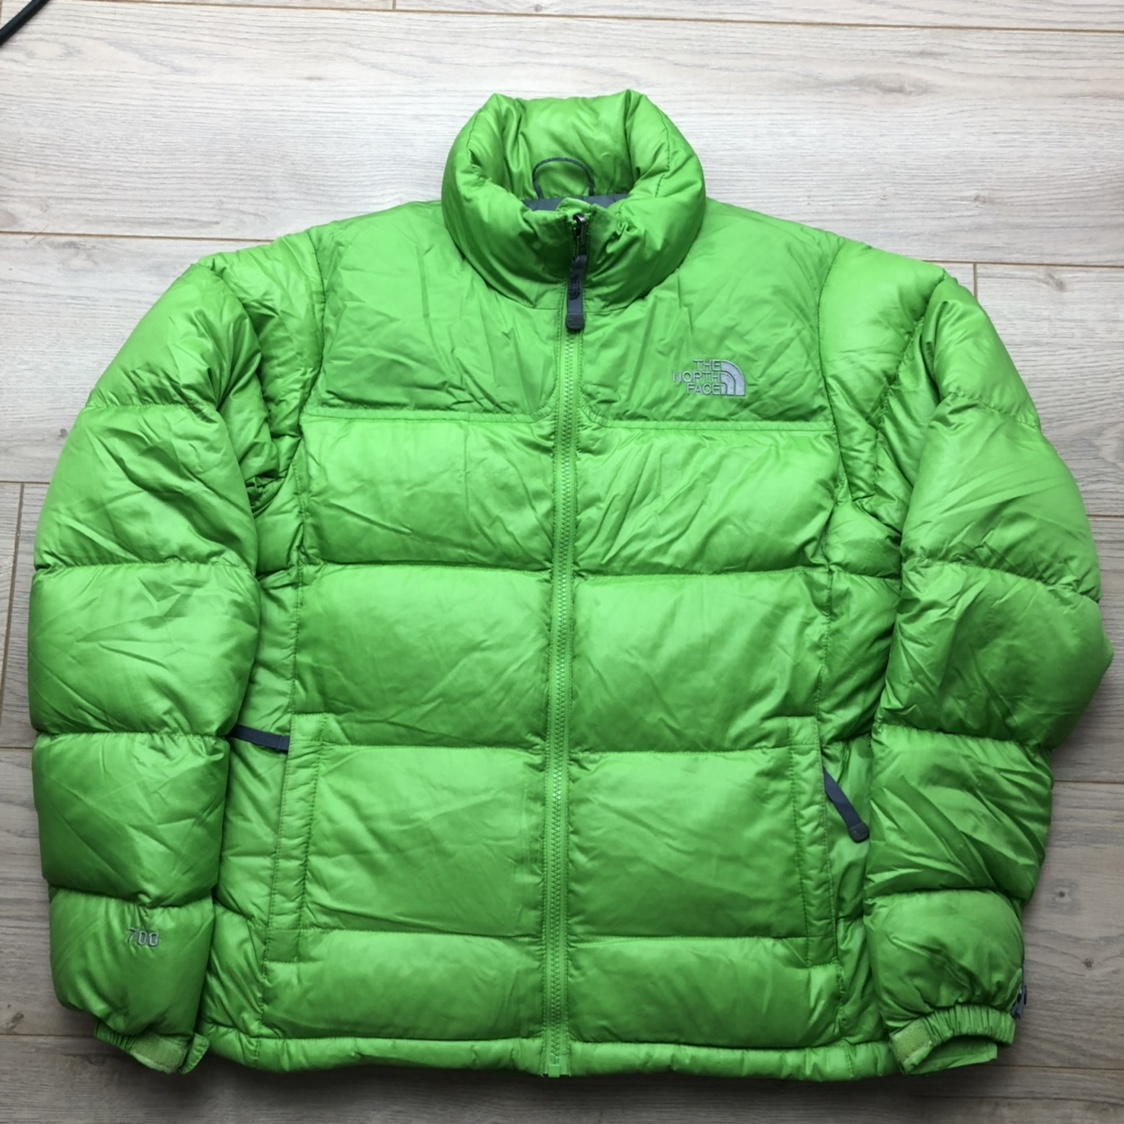 Vintage lime-green puffer 00s